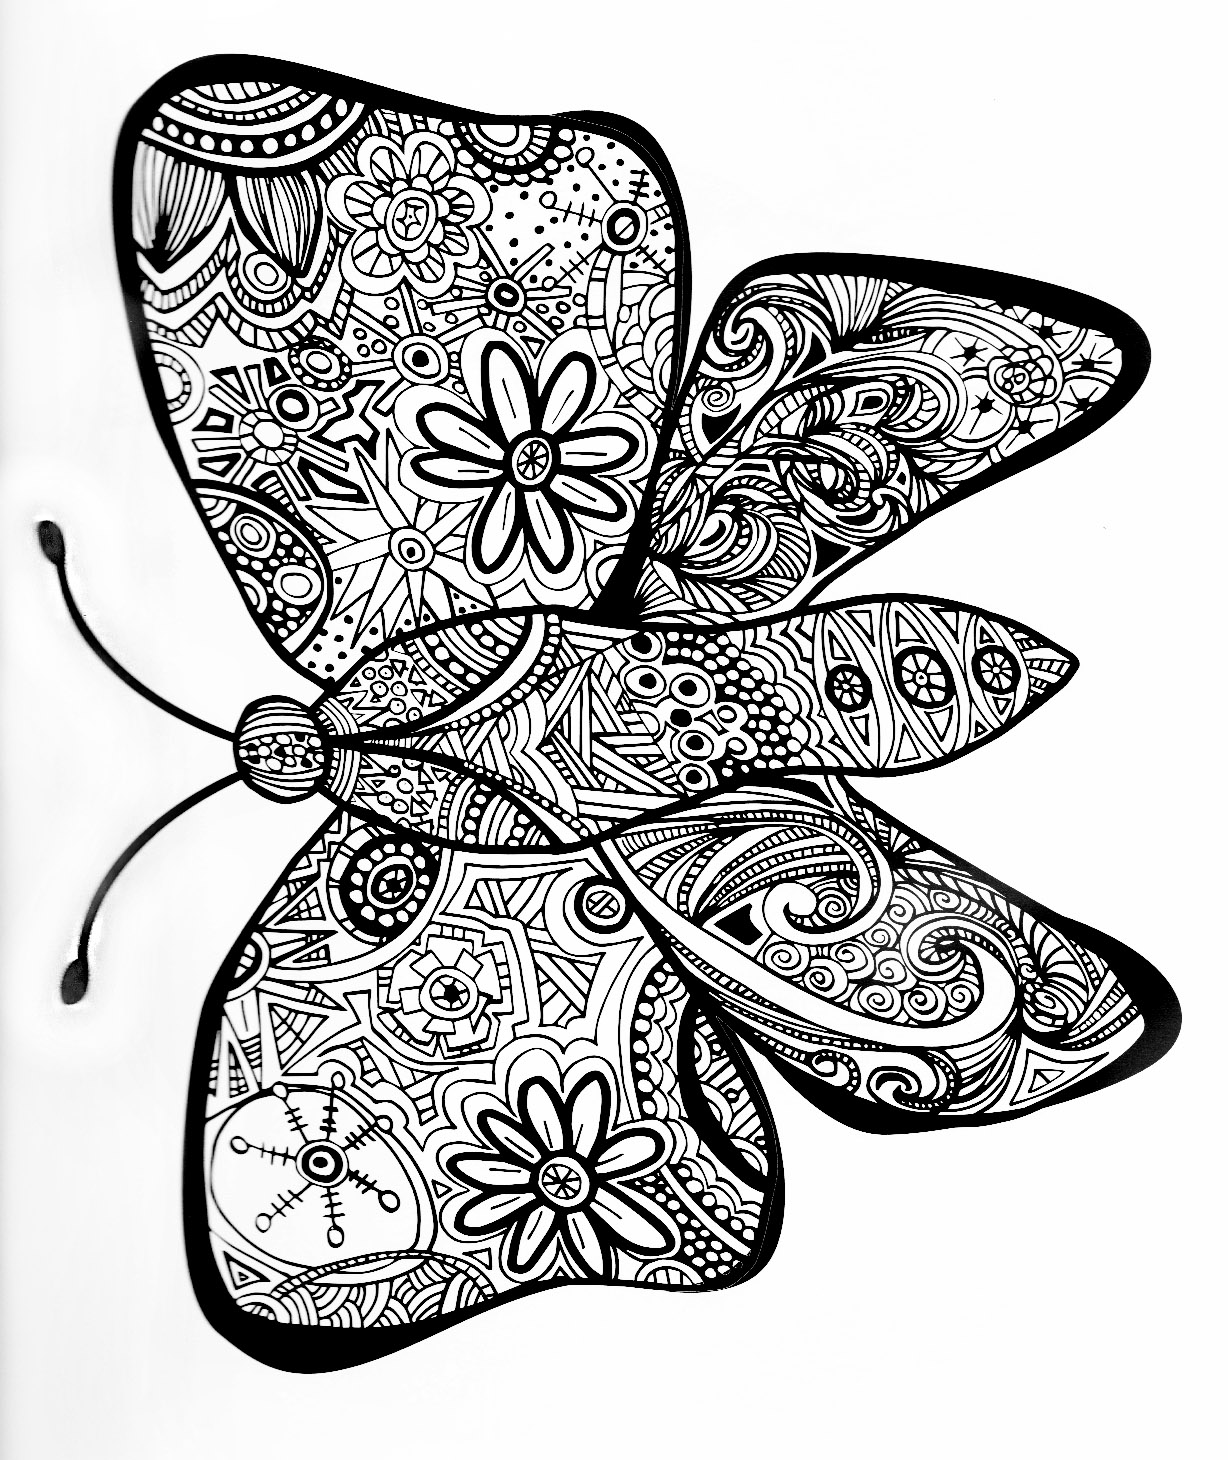 Butterfly to download and color